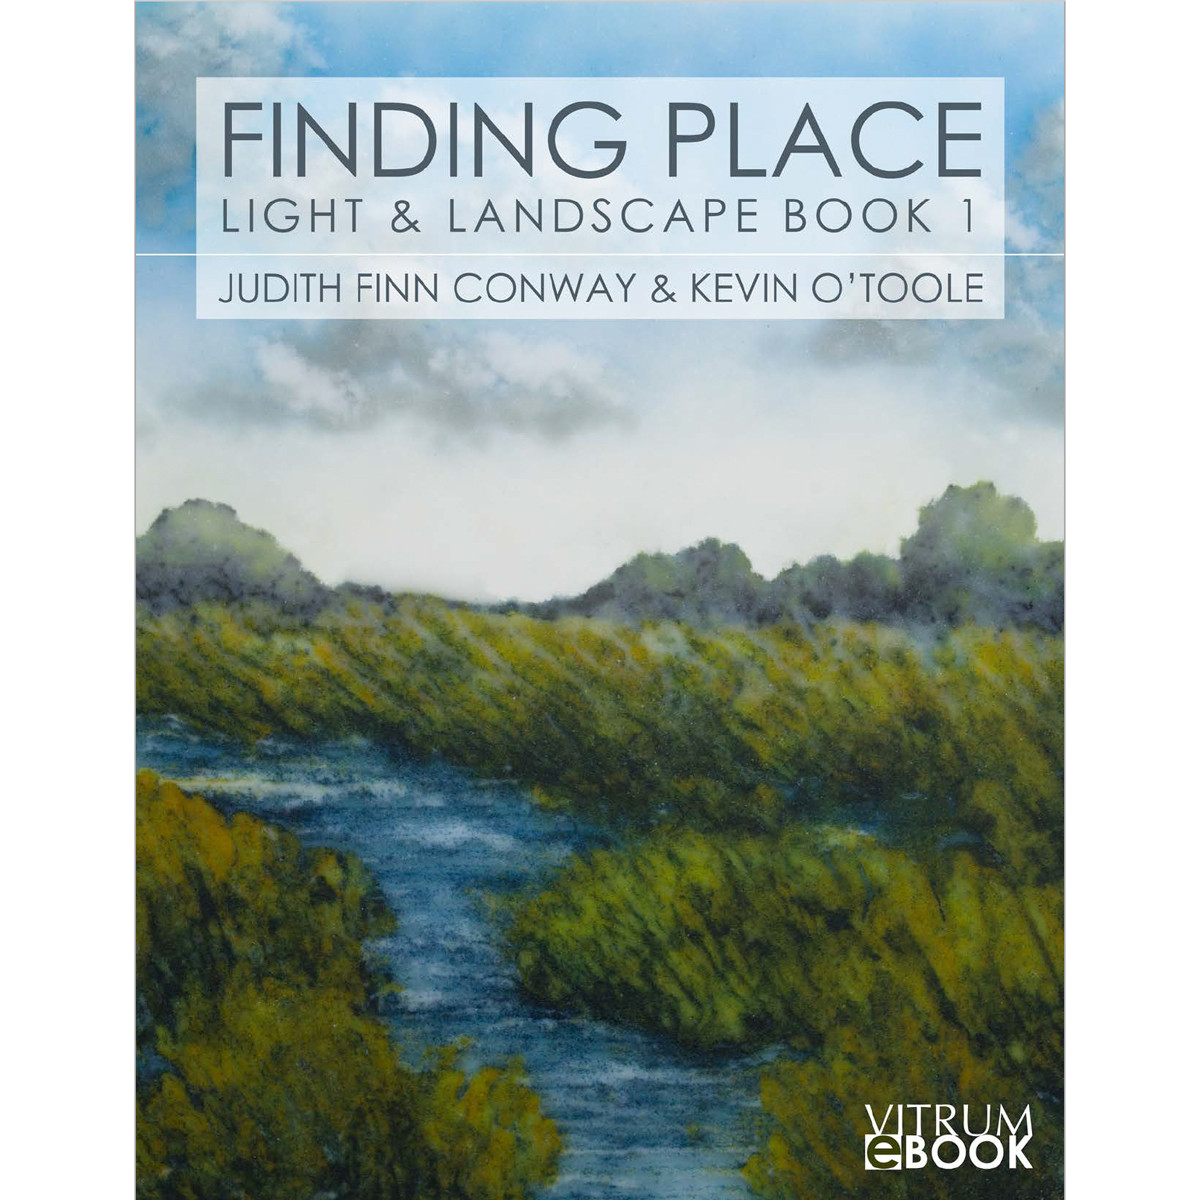 Ebook | Finding Place, Light and Landscape Book 1